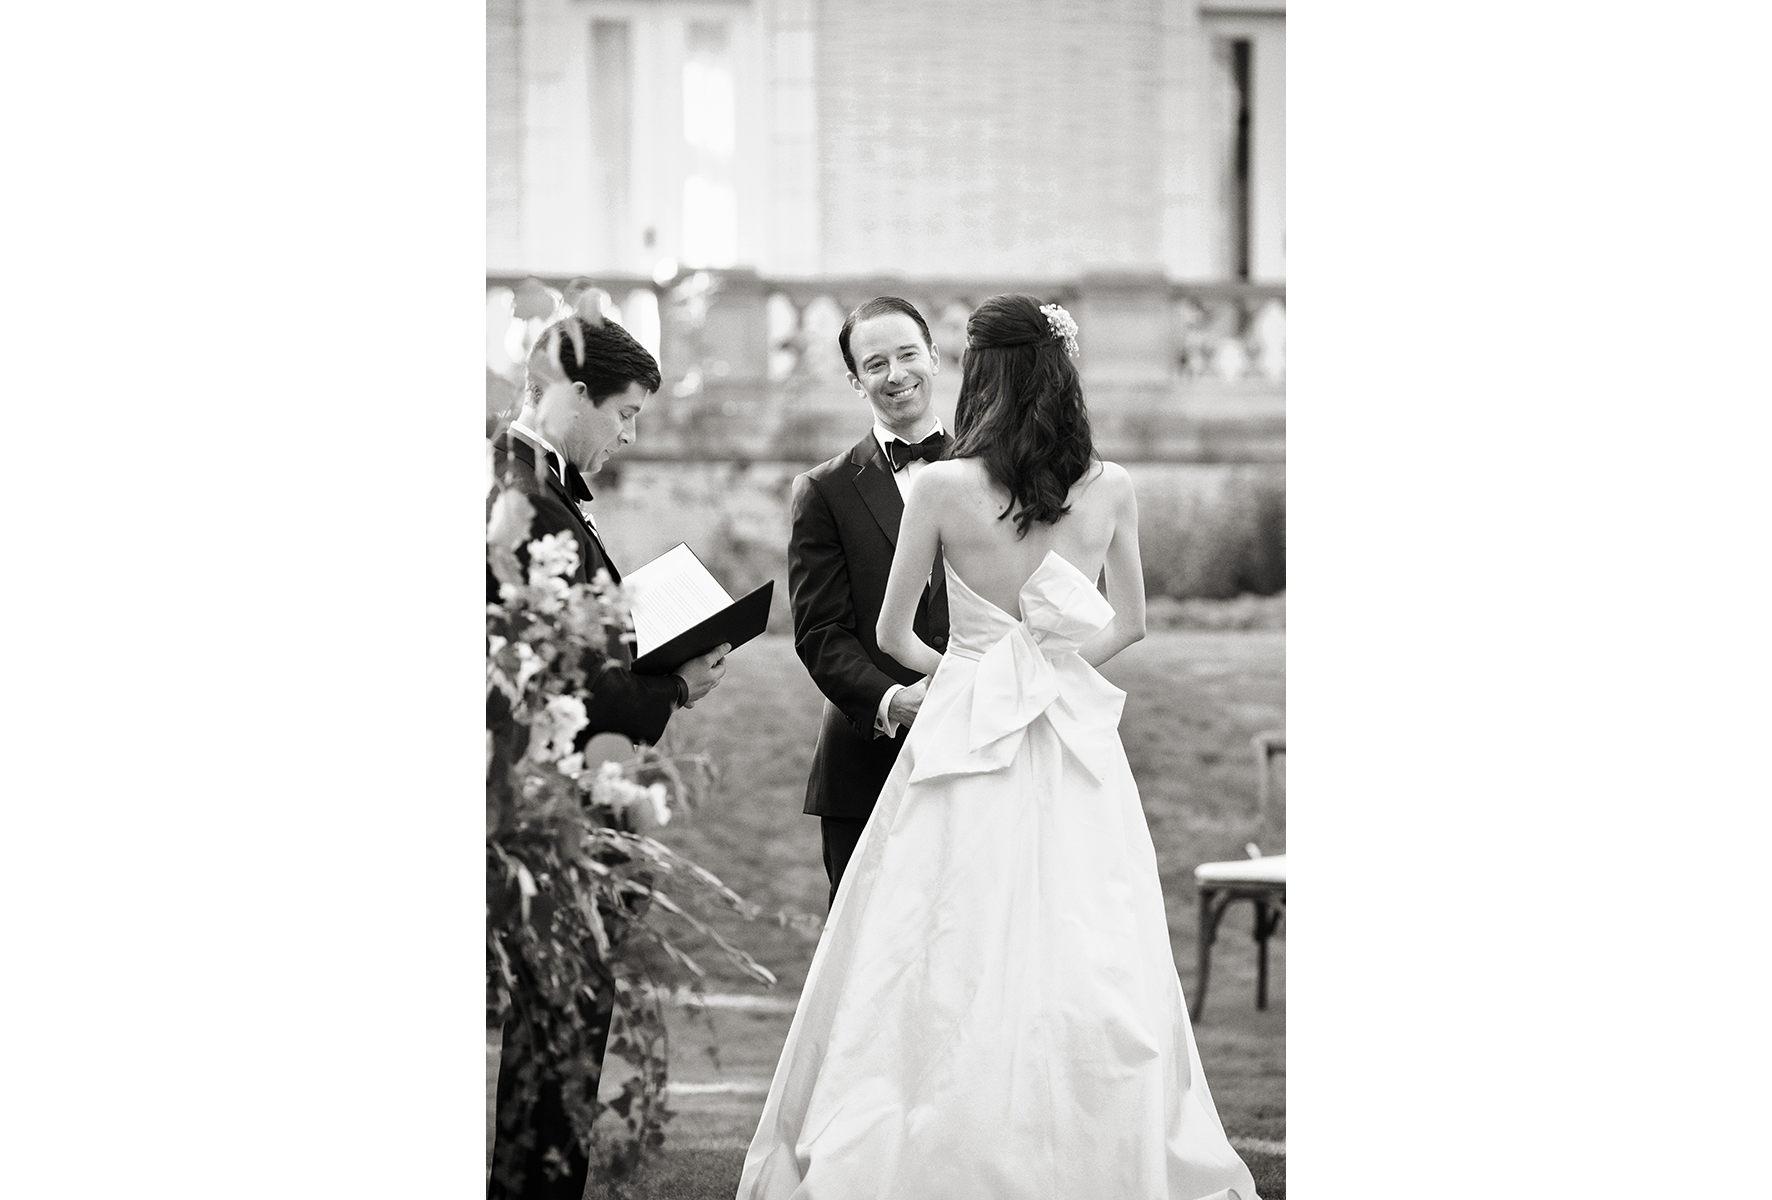 raquelreis_wedding_photography_wheatleigh_044.png